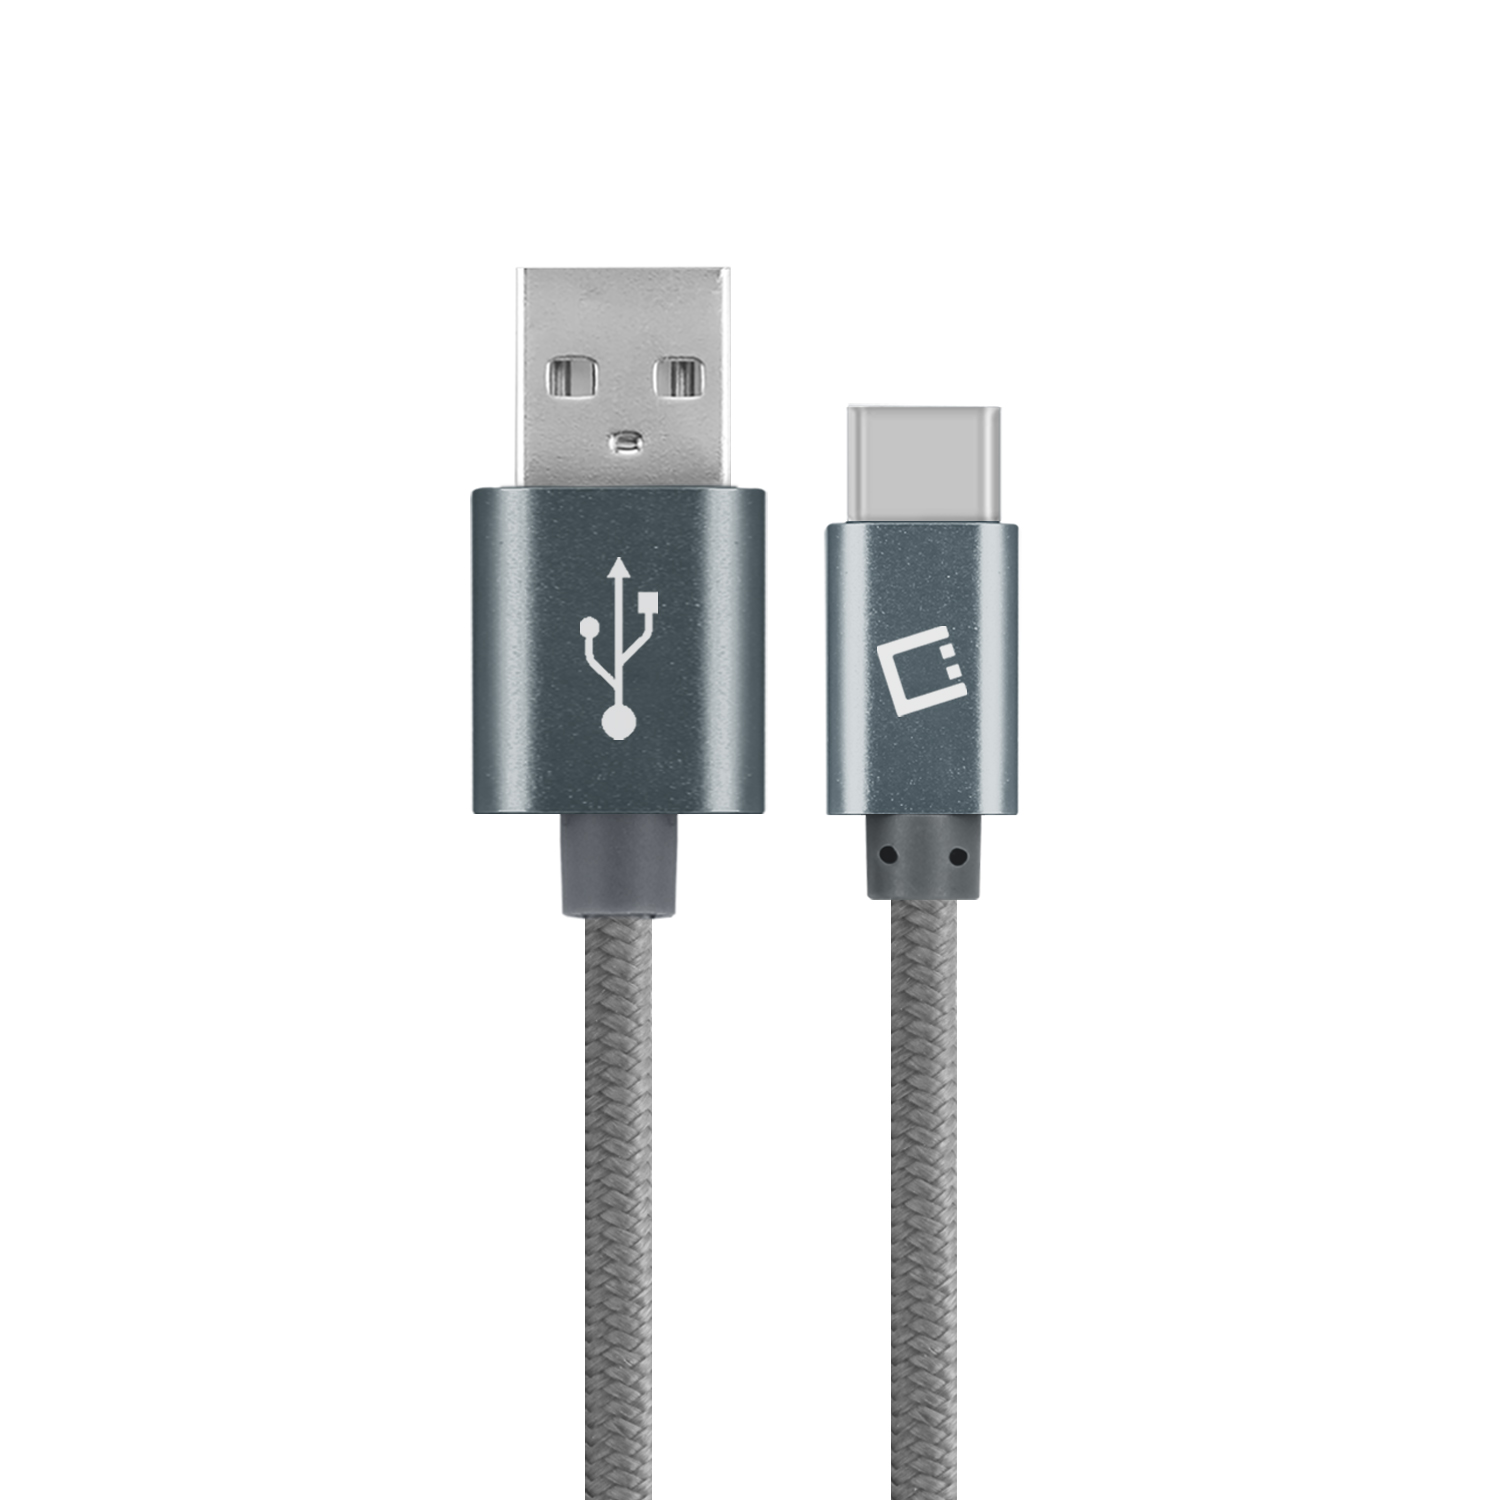 Sony Xperia X Compact USB Type-C To Type-A Braided Data Power Cable Grey 6ft Braided